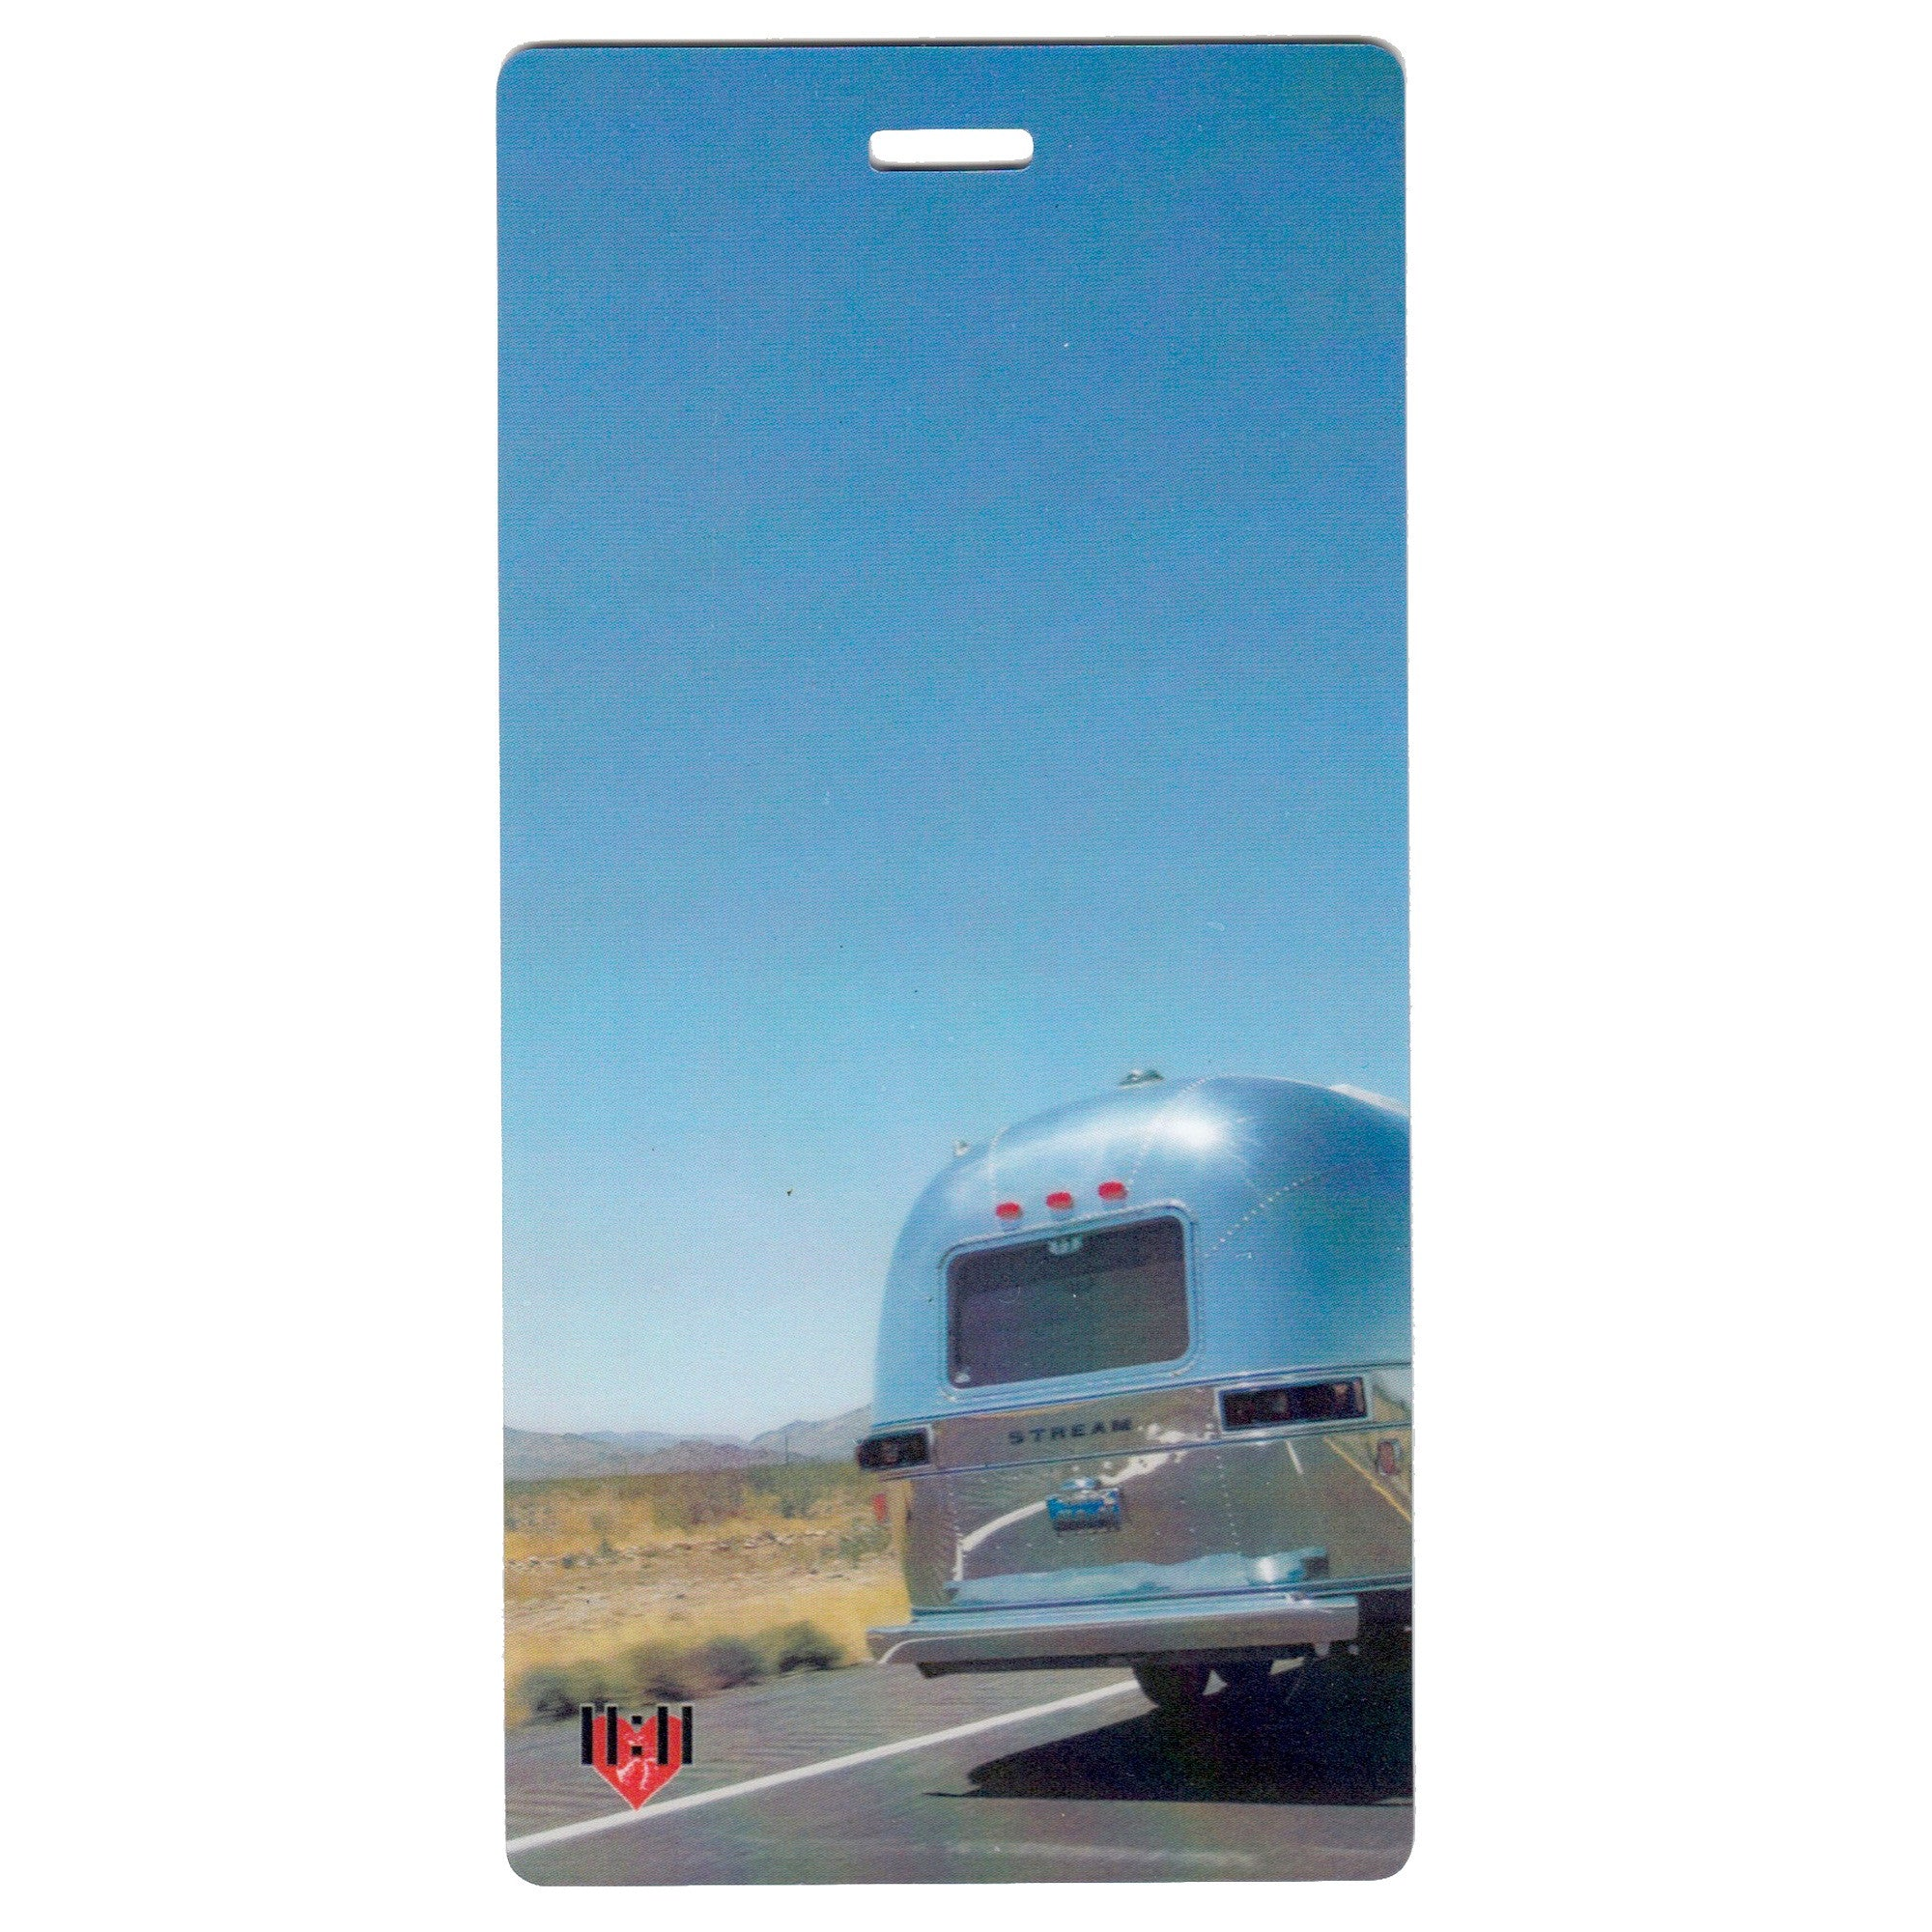 Airstream On the Road Luggage Bag Tag Set - 2 pc, Large by 11:11 Enterprises